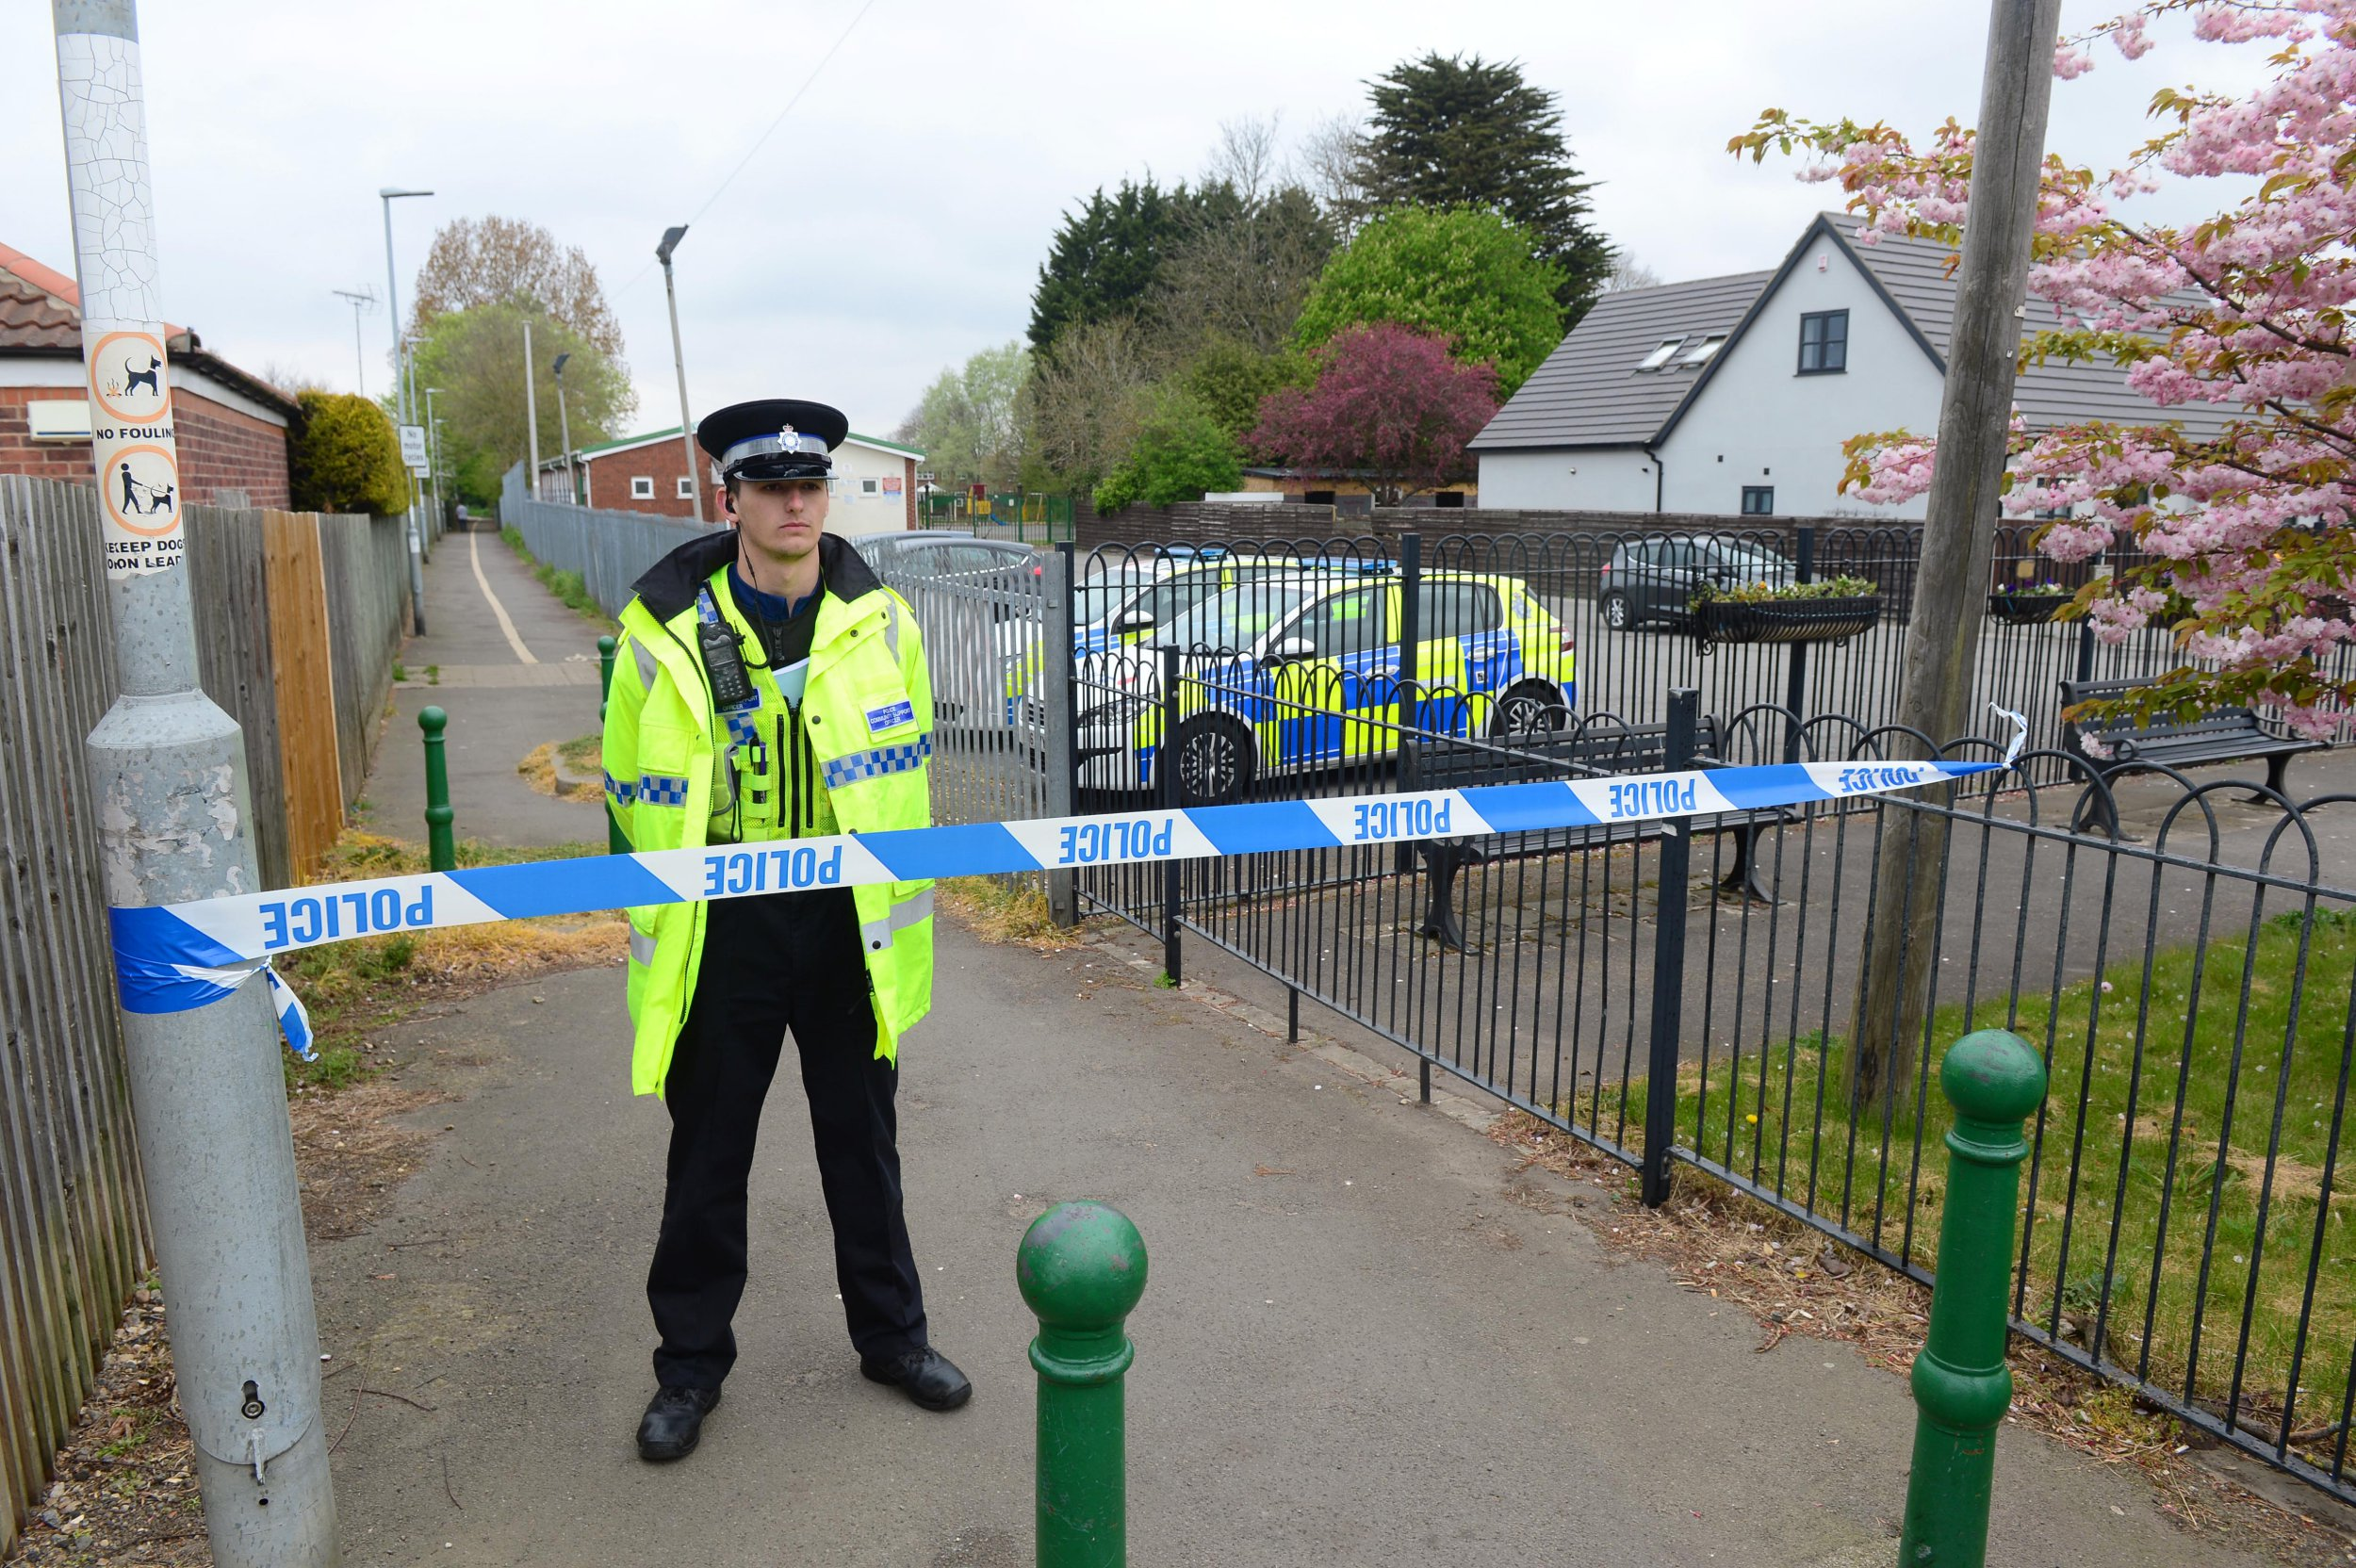 Part of a human leg has been found just yards from a school on a path in New Waltham. A dog walker made the grisly discovery on the old railway line at 6.45am and the area has been cordoned off by Humberside Police. Police say they believe the body part is a 'lower limb'. It was found close to the New Waltham Academy playing fields. There is a heavy police presence in the village as investigations are carried out around the popular trail, officially known as the New Waltham Peaks Parkway Path that runs from Low Farm roundabout to Station Road. Police have appealed for people to avoid the area and it is believed a route linking the path to the school has been closed.